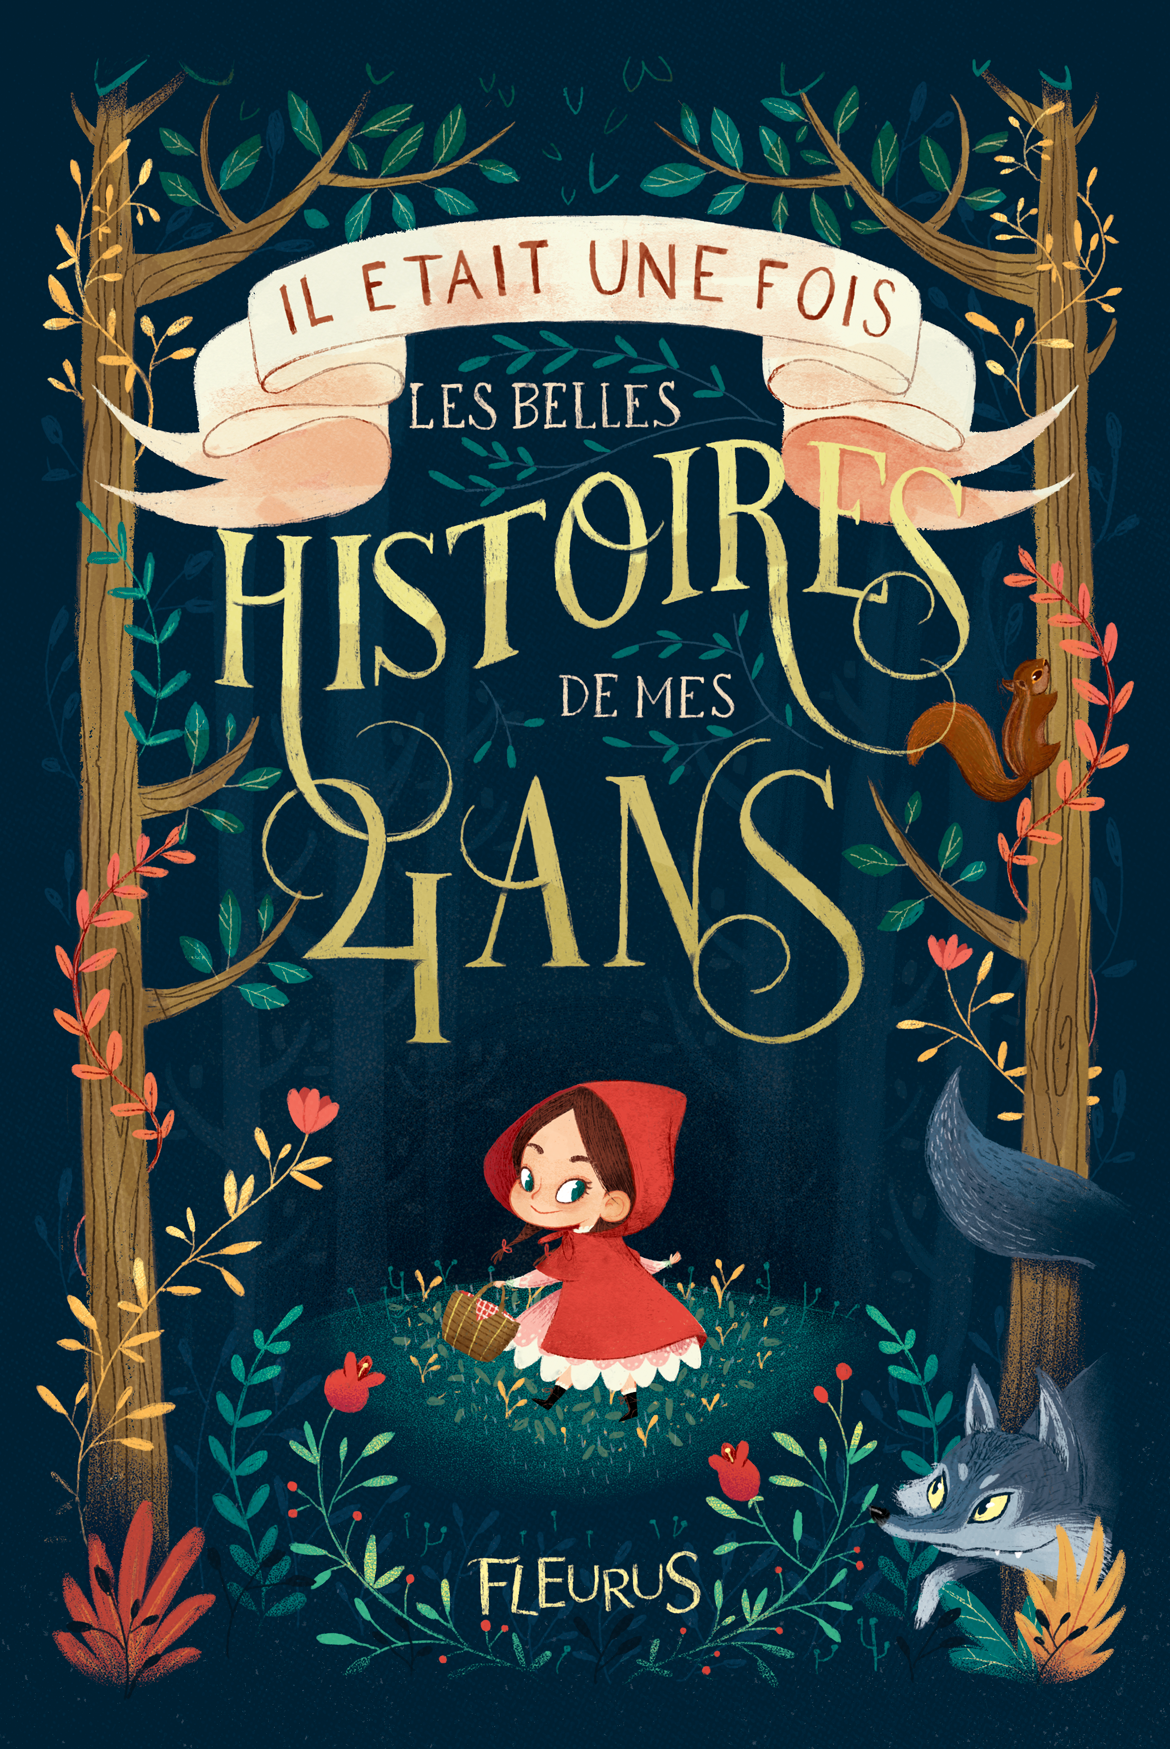 Children S Book Covers Design : Children s book covers for fleurus editions on behance